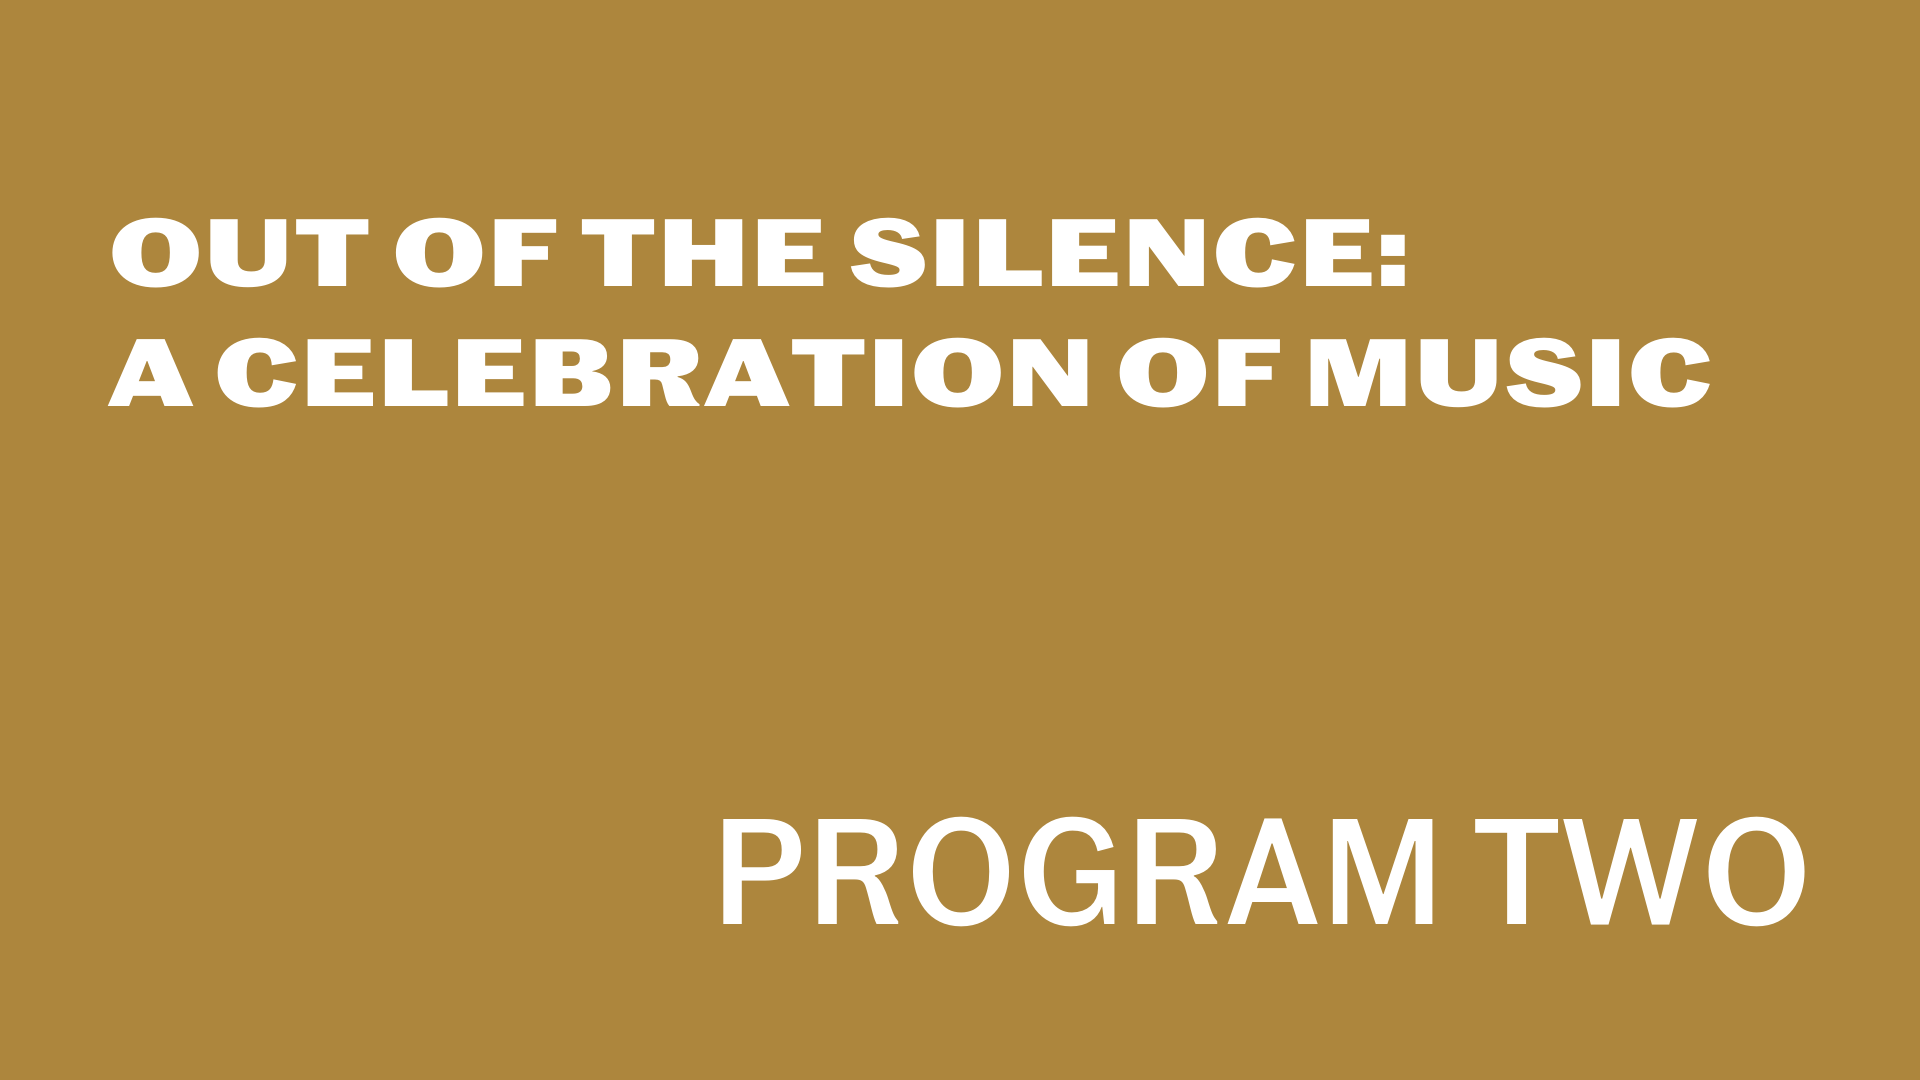 [Out of the Silence:A Celebration of MusicProgram Two]